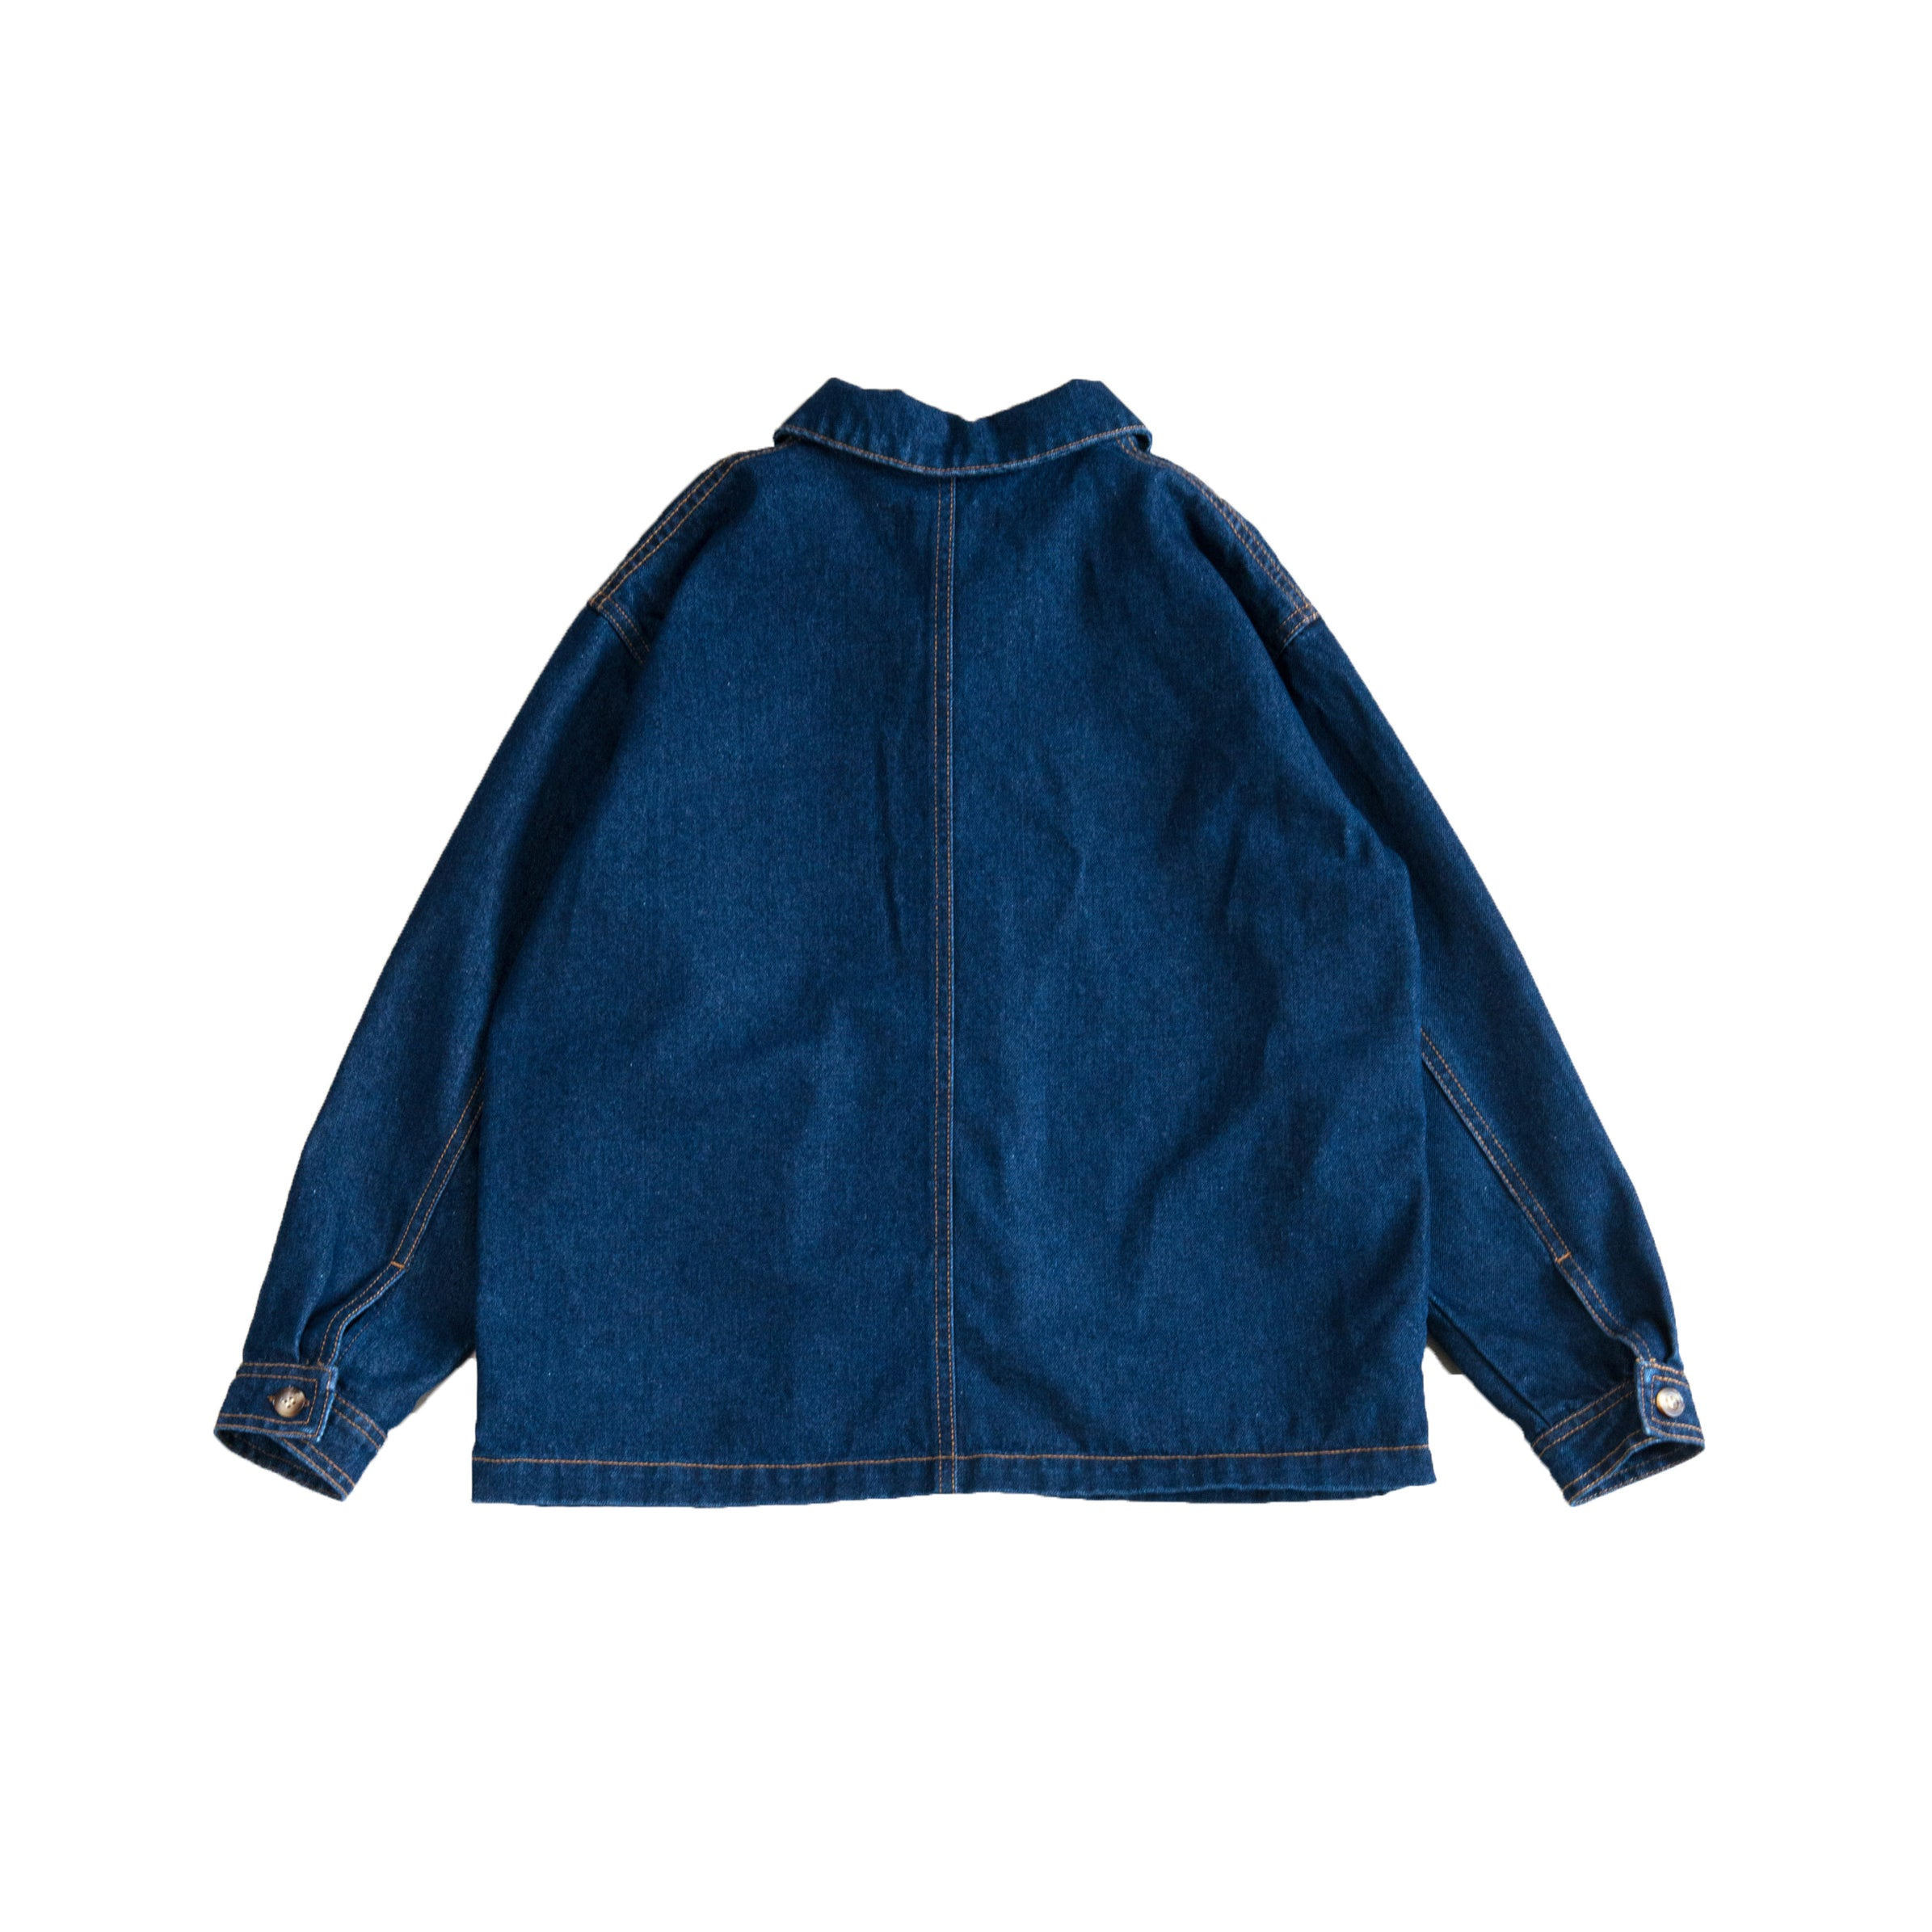 Main Story Artiste Kid's Unisex Jacket Dark Denim Wash | BIEN BIEN bienbienshop.com